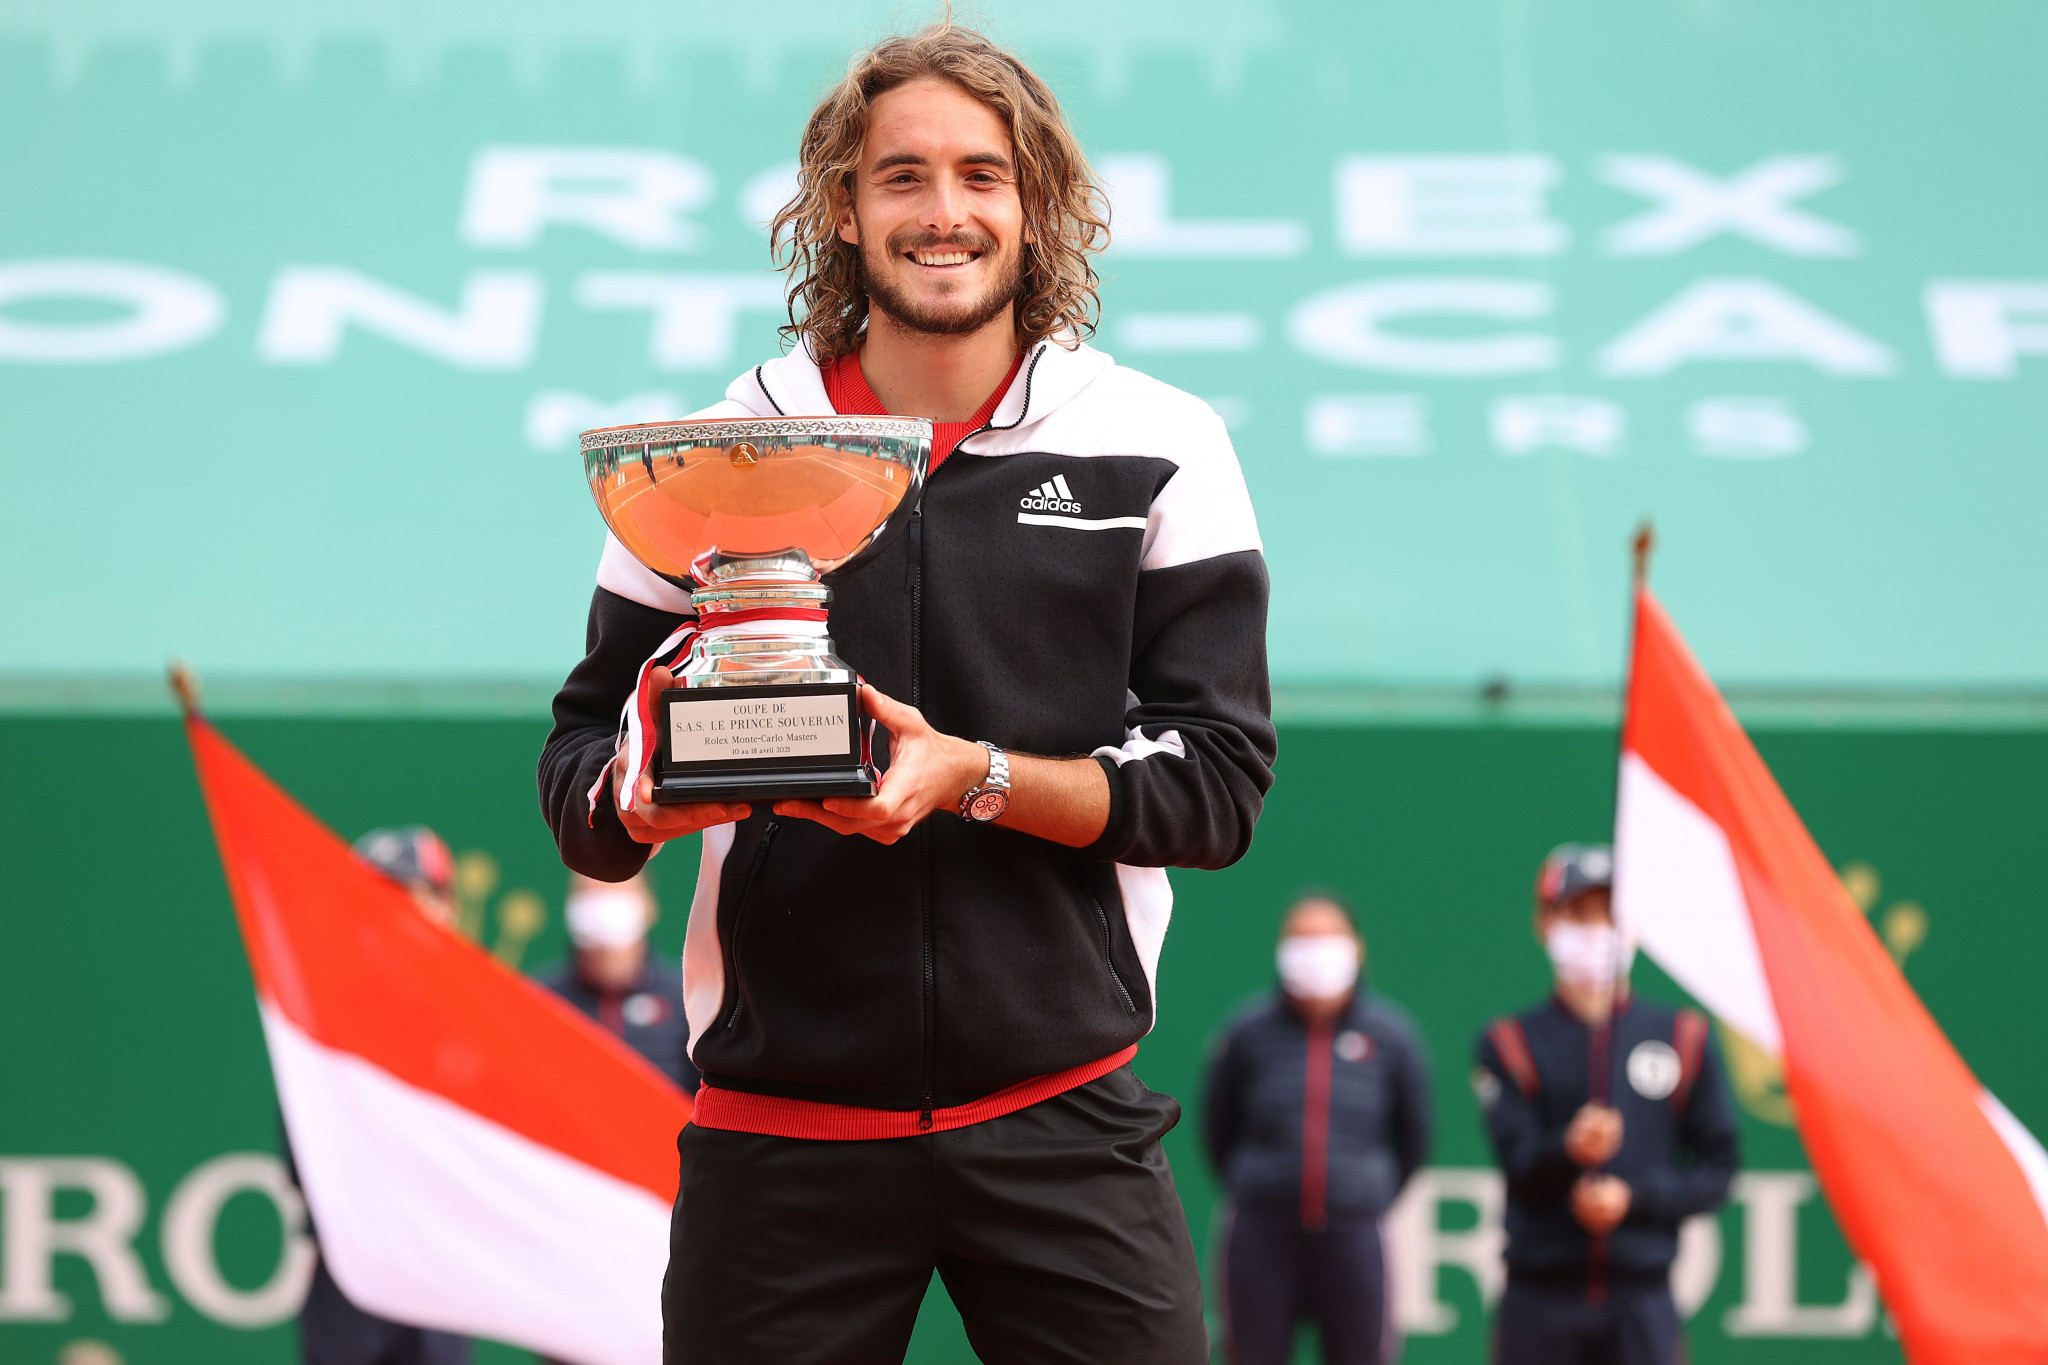 Tsitsipas seals first ATP Masters 1000 title with win over Rublev in Monte-Carlo